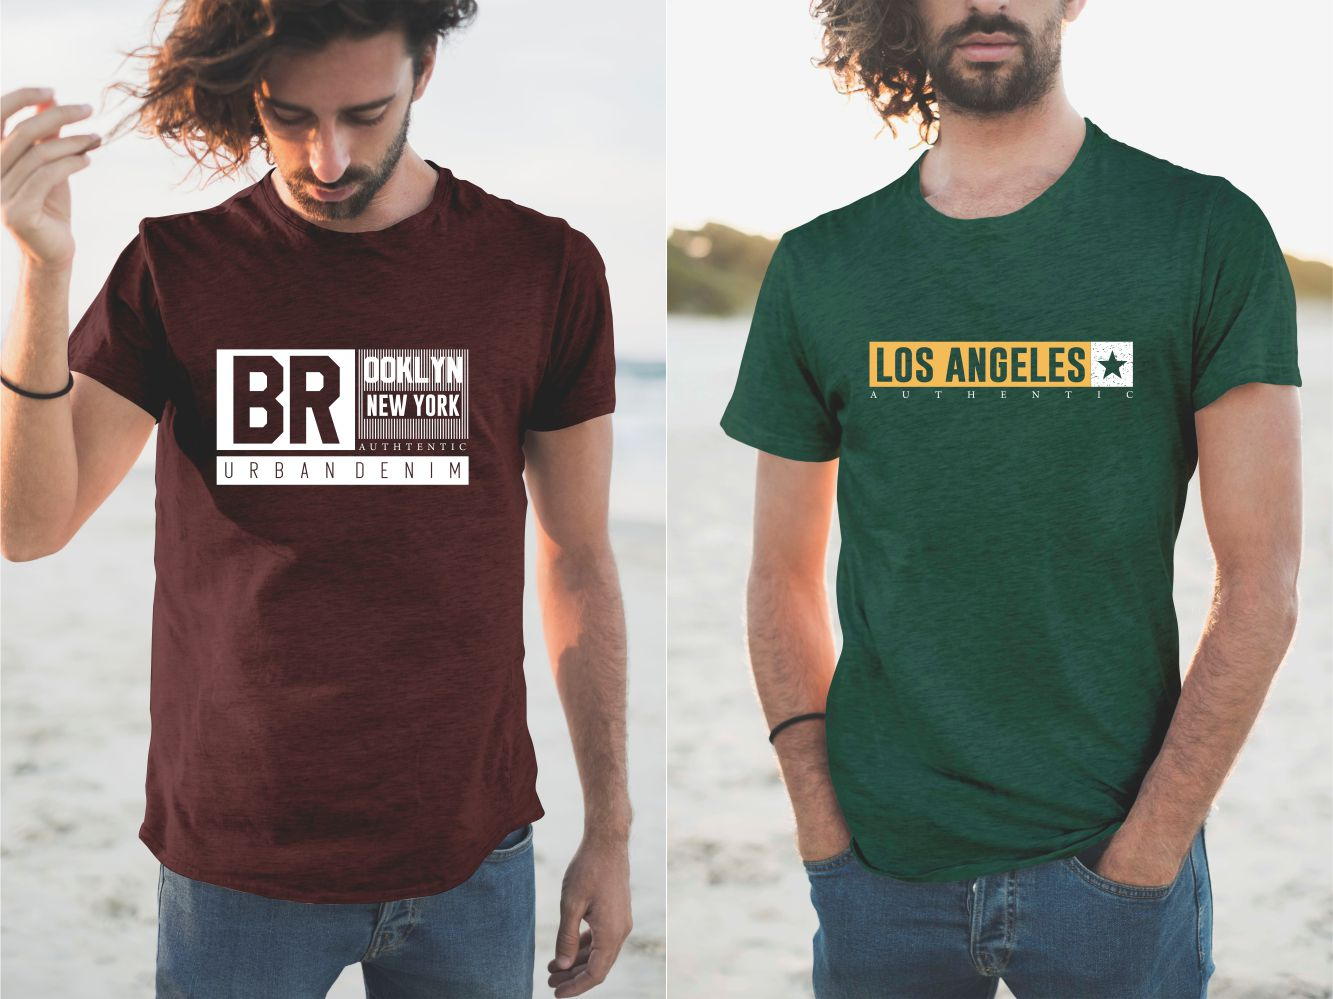 Burgundy and green tees with the name of LA and Borough of New York.